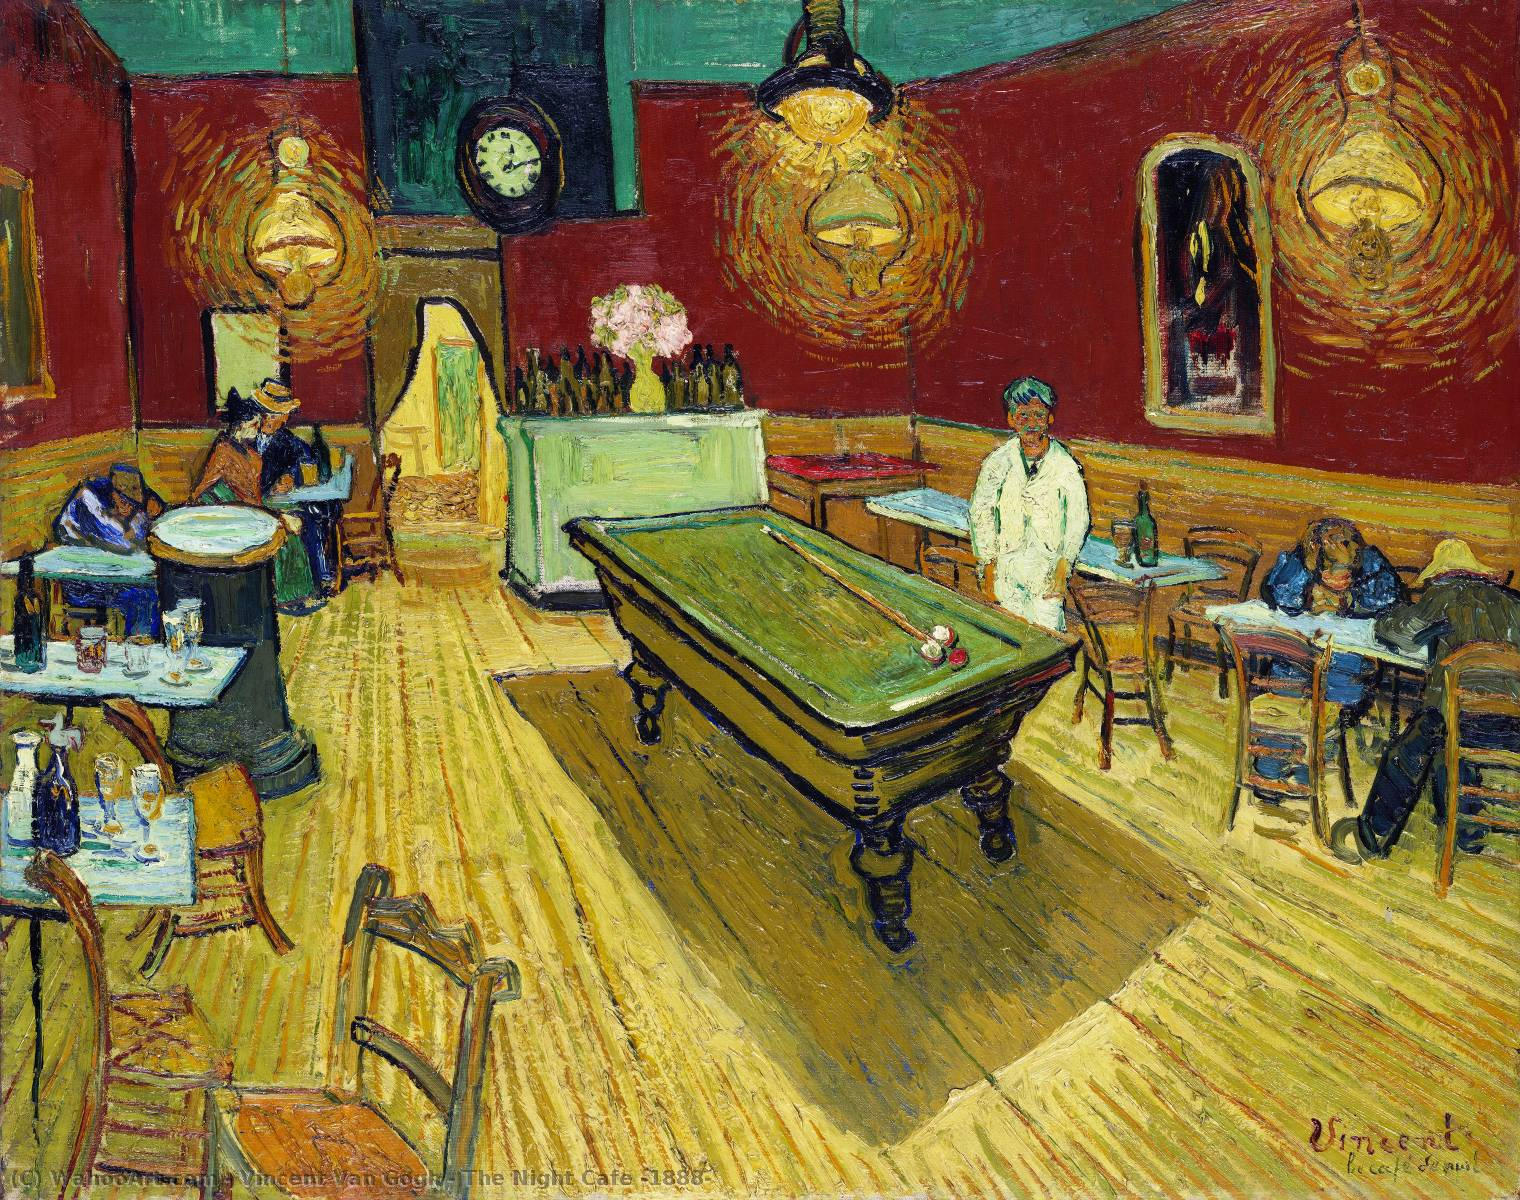 Ordinare Stampe Di Qualità Del Museo | il notte caffè di Vincent Van Gogh | Most-Famous-Paintings.com